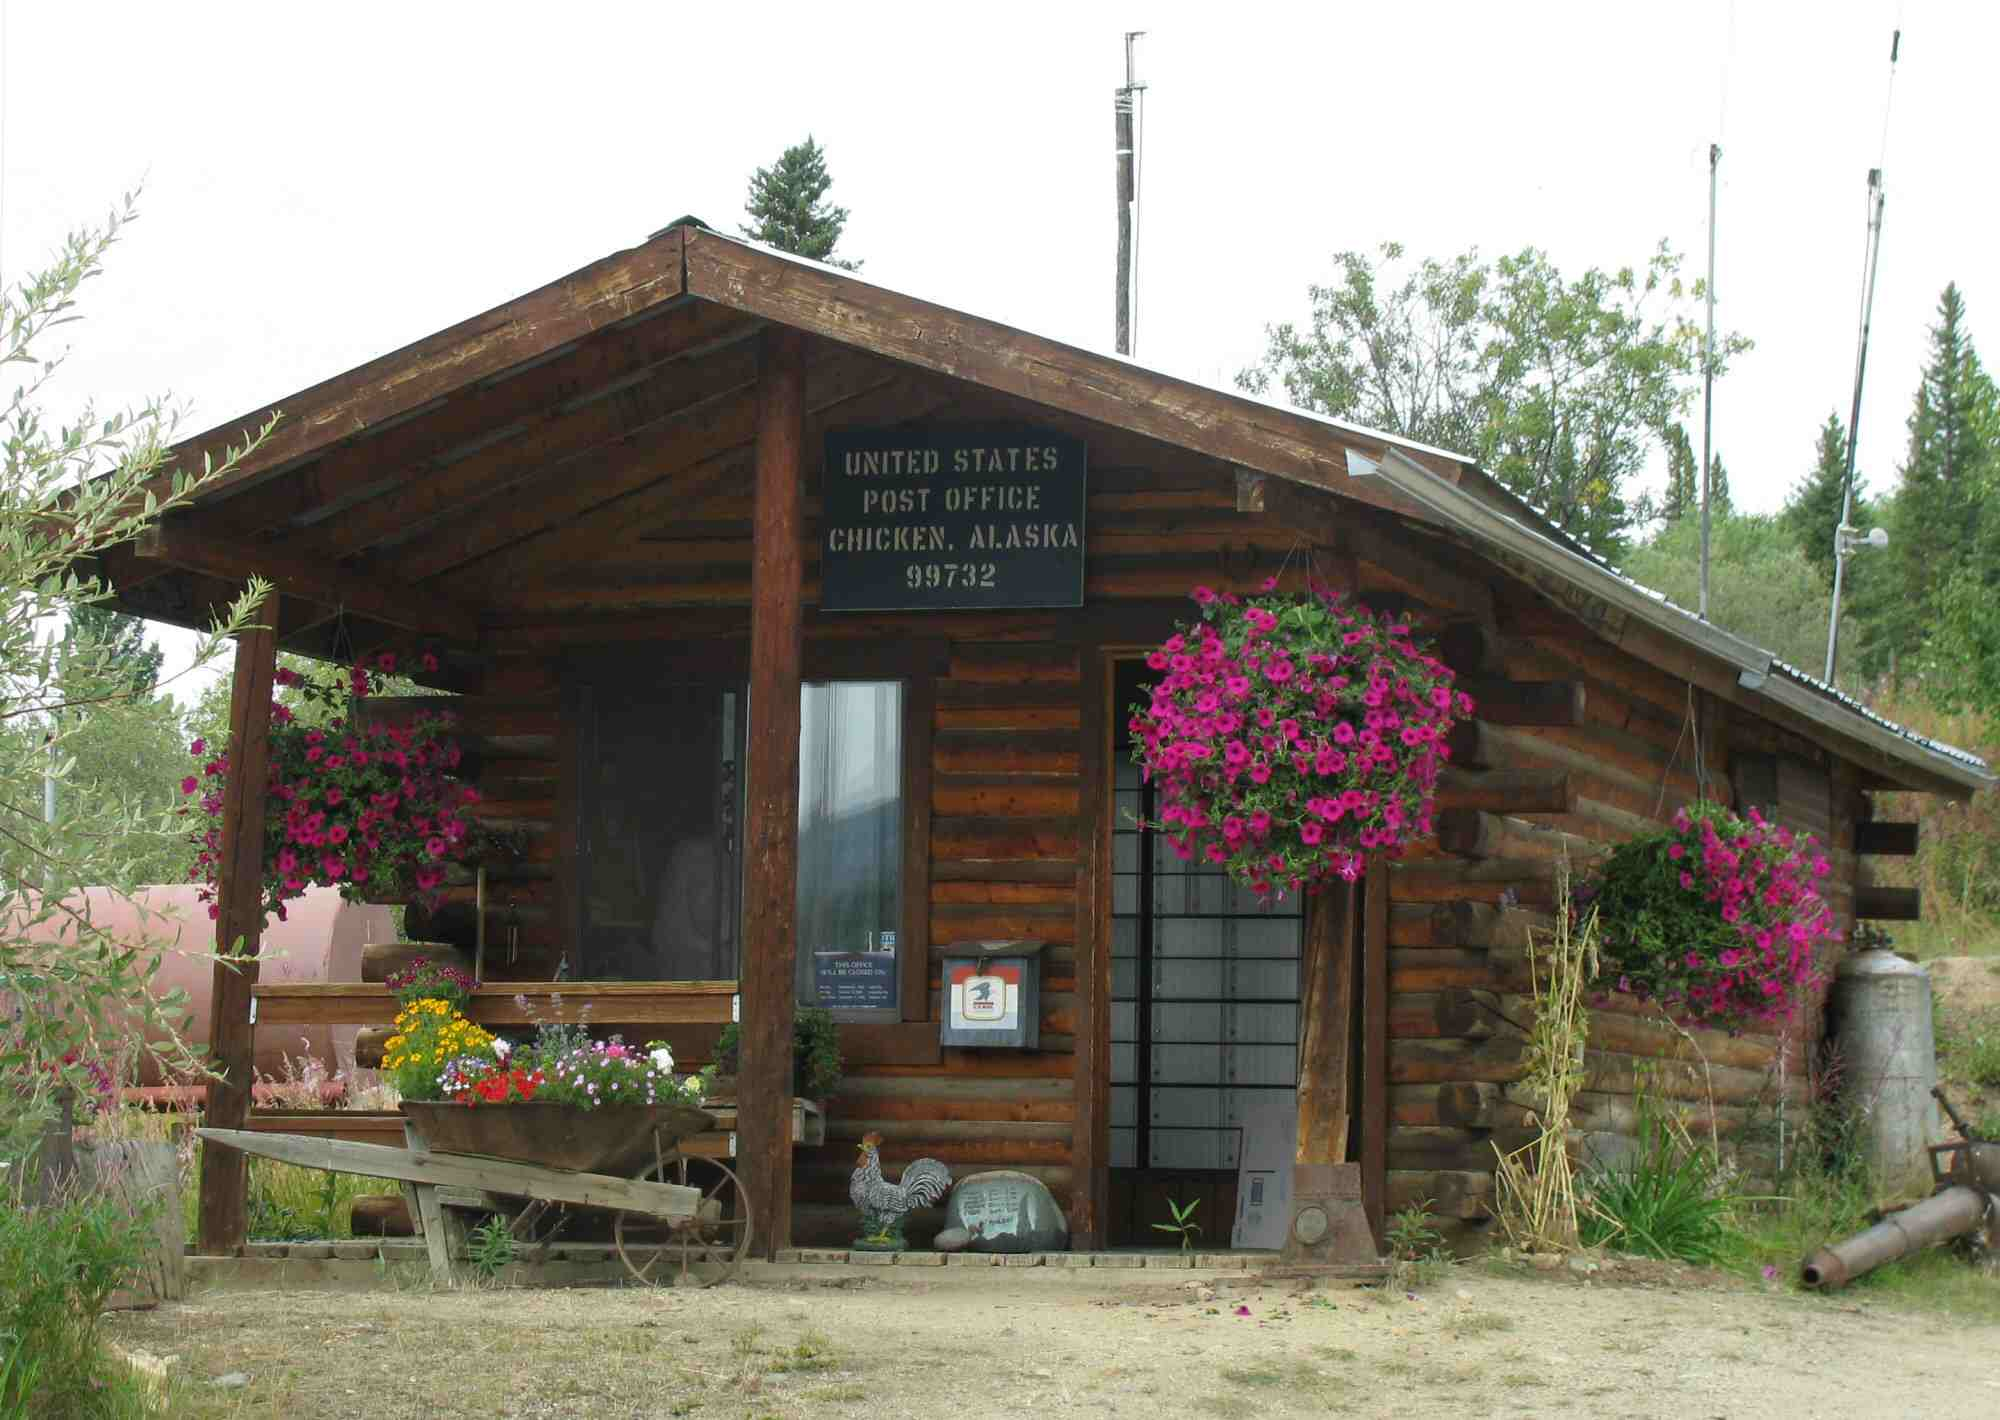 Photo of a log cabin style post office in Chicken, Alaska, 2009